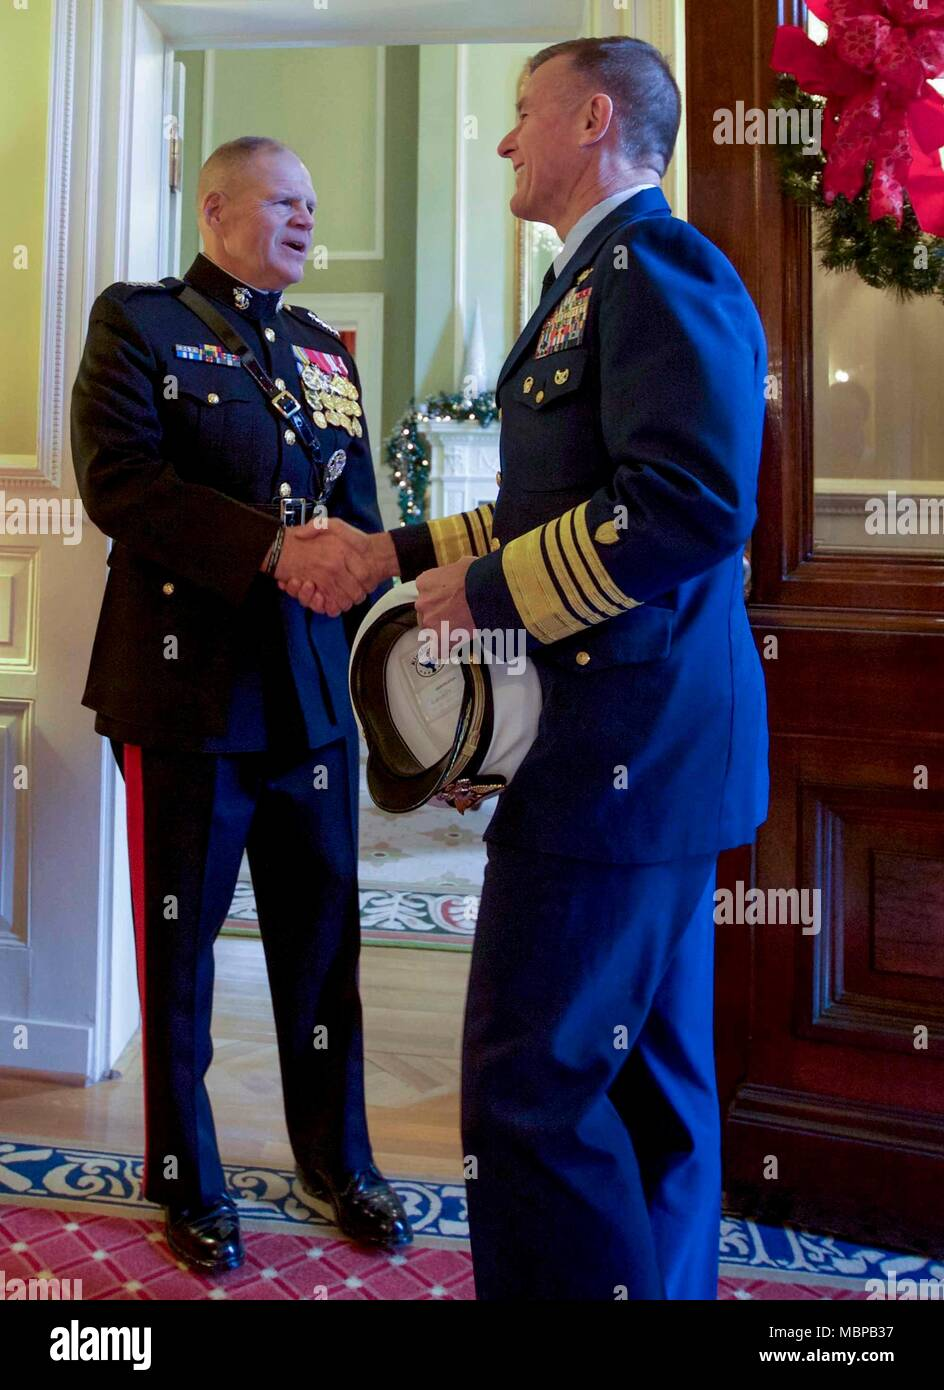 Commandant of the Marine Corps Gen. Robert B. Neller, left, shakes hands with Commandant of the Coast Guard, Adm. Paul F. Zukunft before the 2018 Surprise Serenade at the Home of the Commandants, Washington, D.C., Jan. 1, 2018. The Surprise Serenade is a tradition that dates back to the mid-1800's in which the U.S. Marine Band performs music for the Commandant of the Marine Corps at his home on New Years Day. (U.S. Marine Corps photo by Sgt. Olivia G. Ortiz) Stock Photo